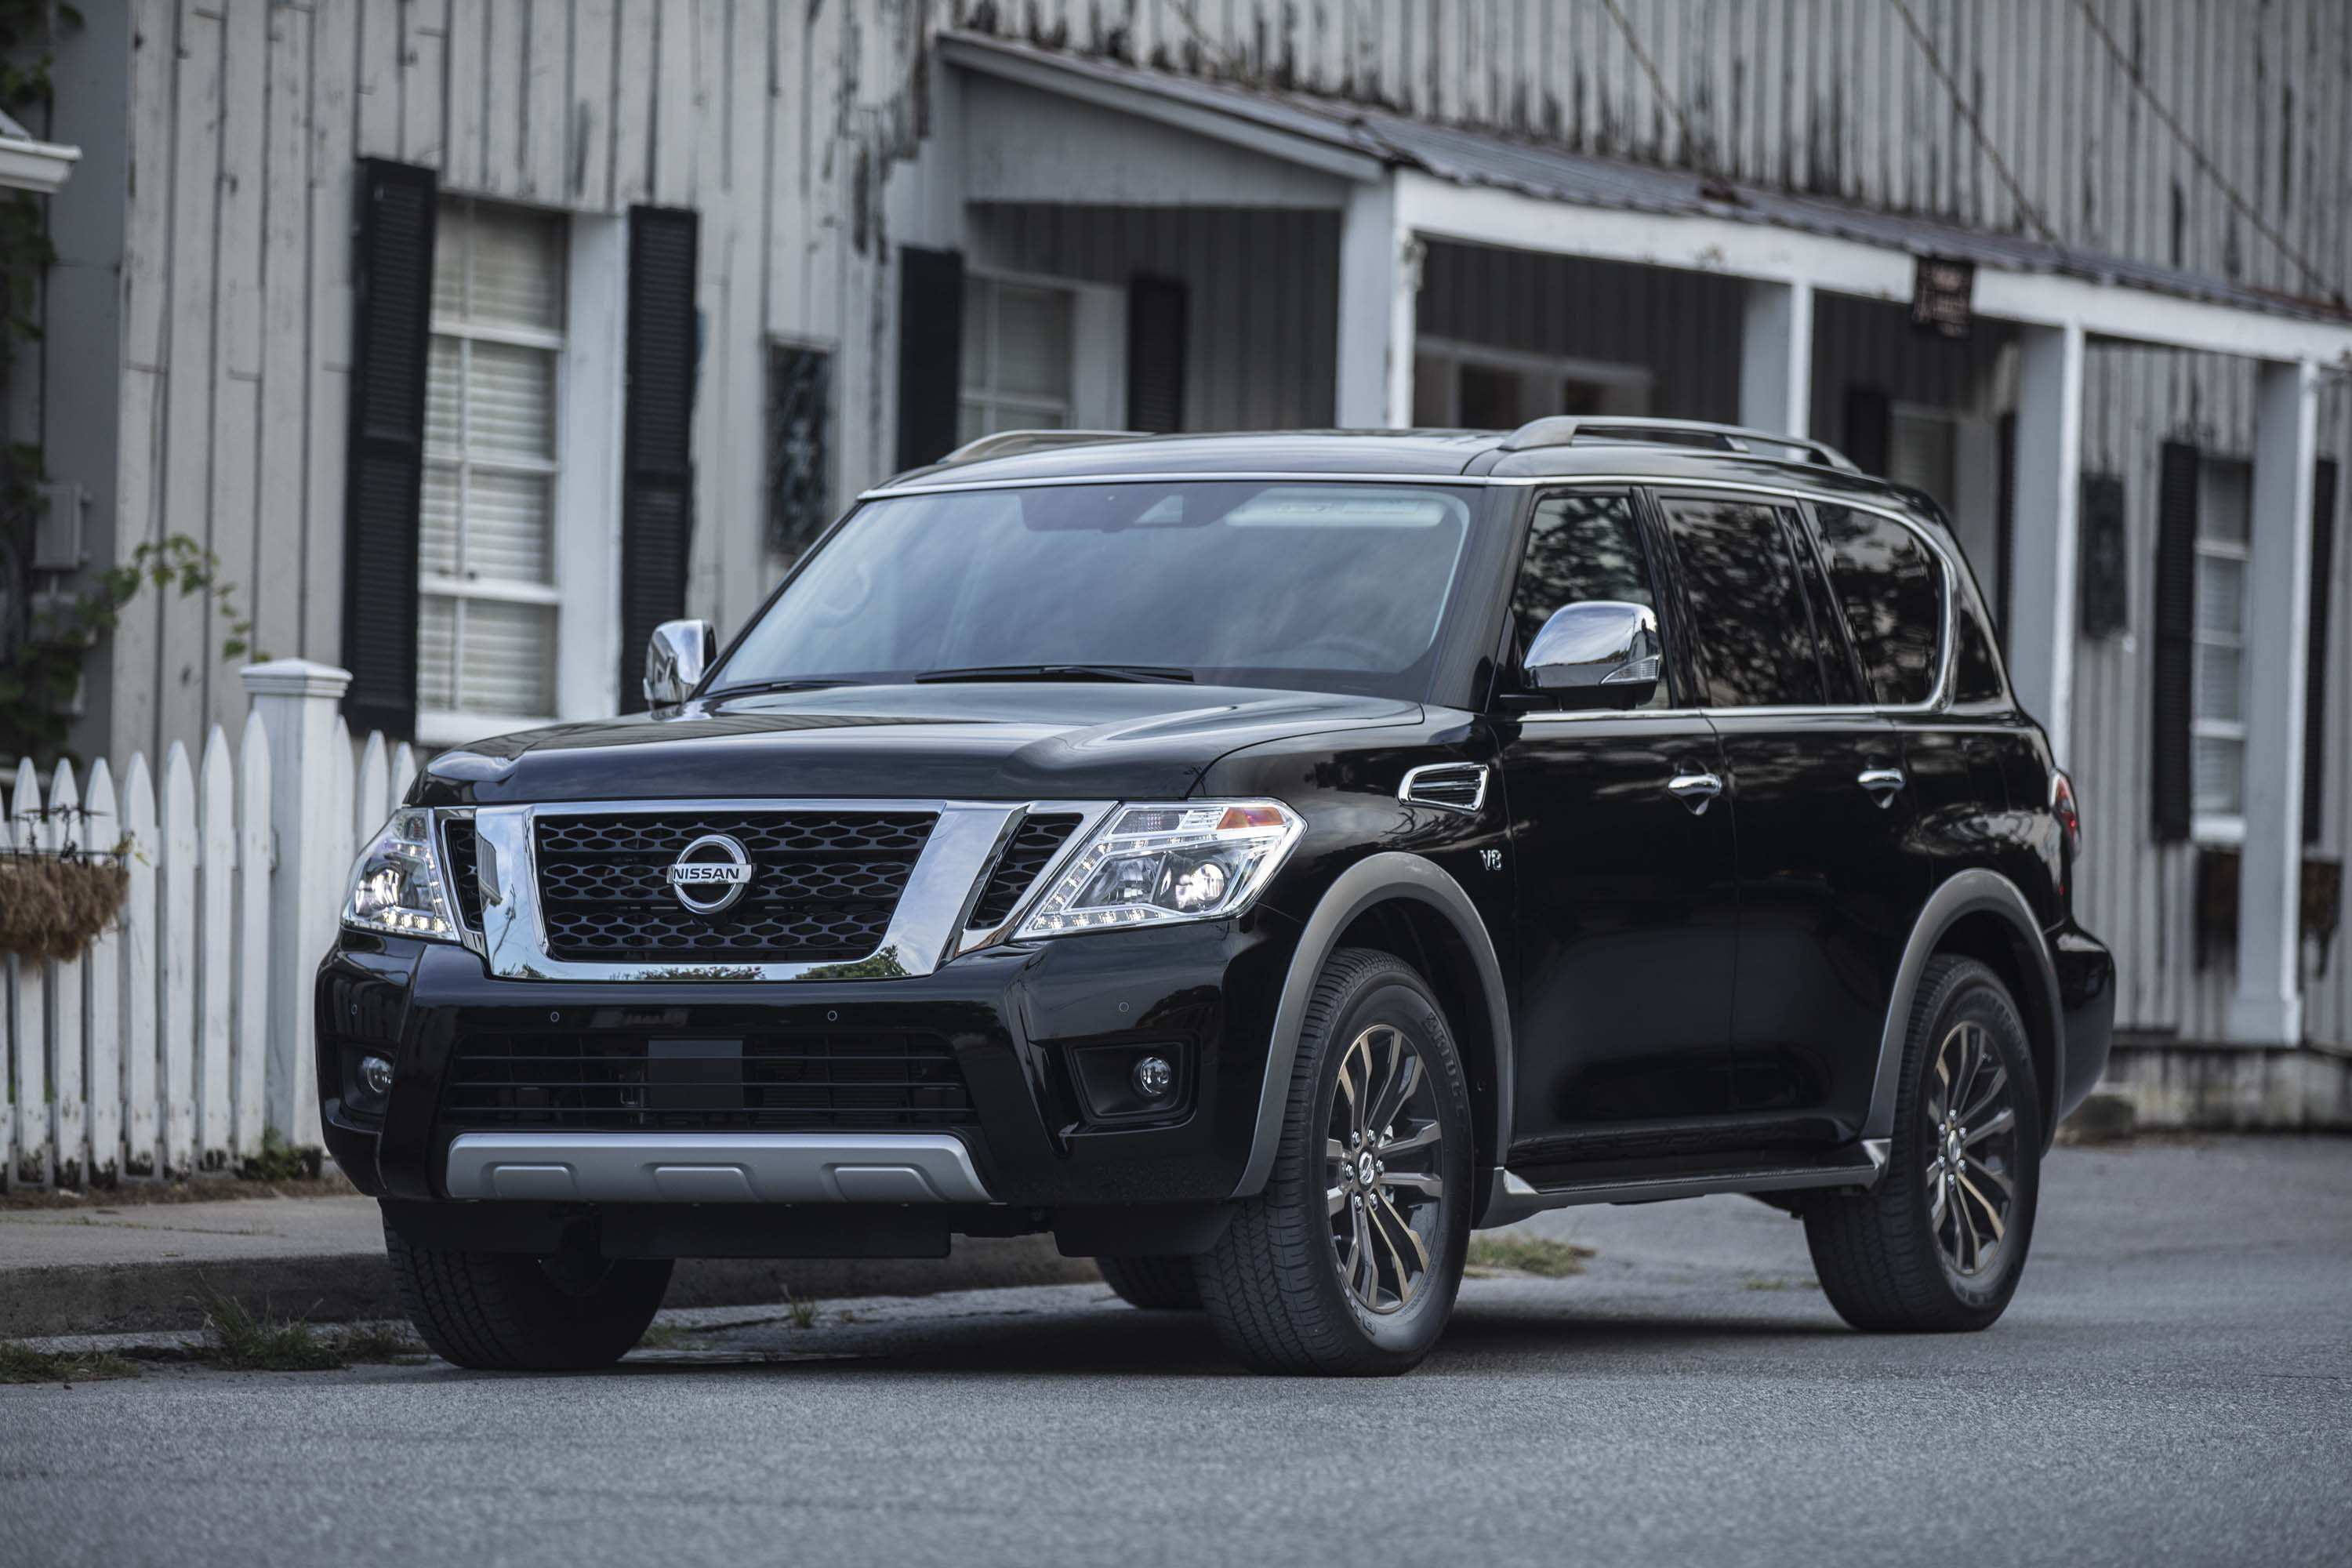 94 The Nissan Armada 2020 Price Spy Shoot by Nissan Armada 2020 Price